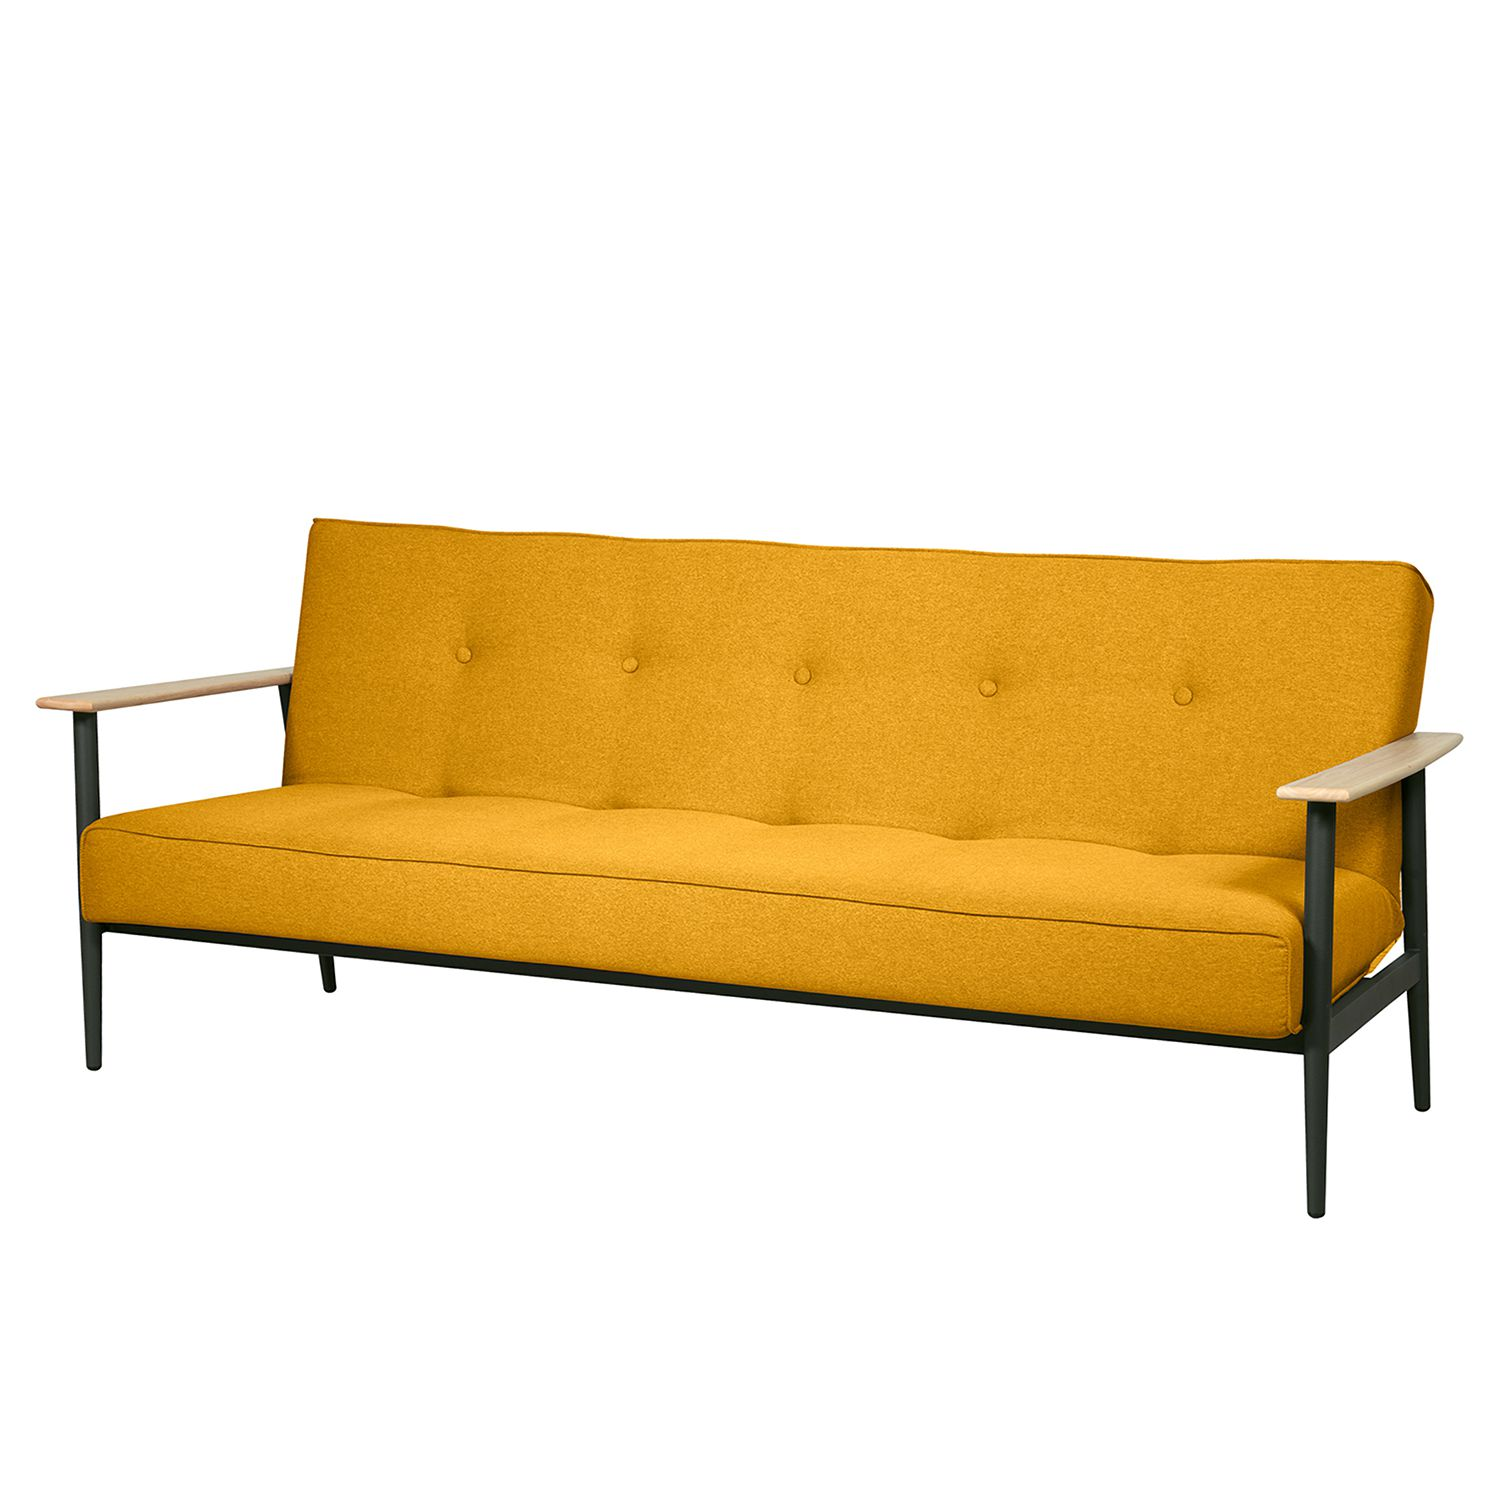 Froli Lattenroste Schlafsofas Novel Bettwäsche Poco Irisette Mako Satin